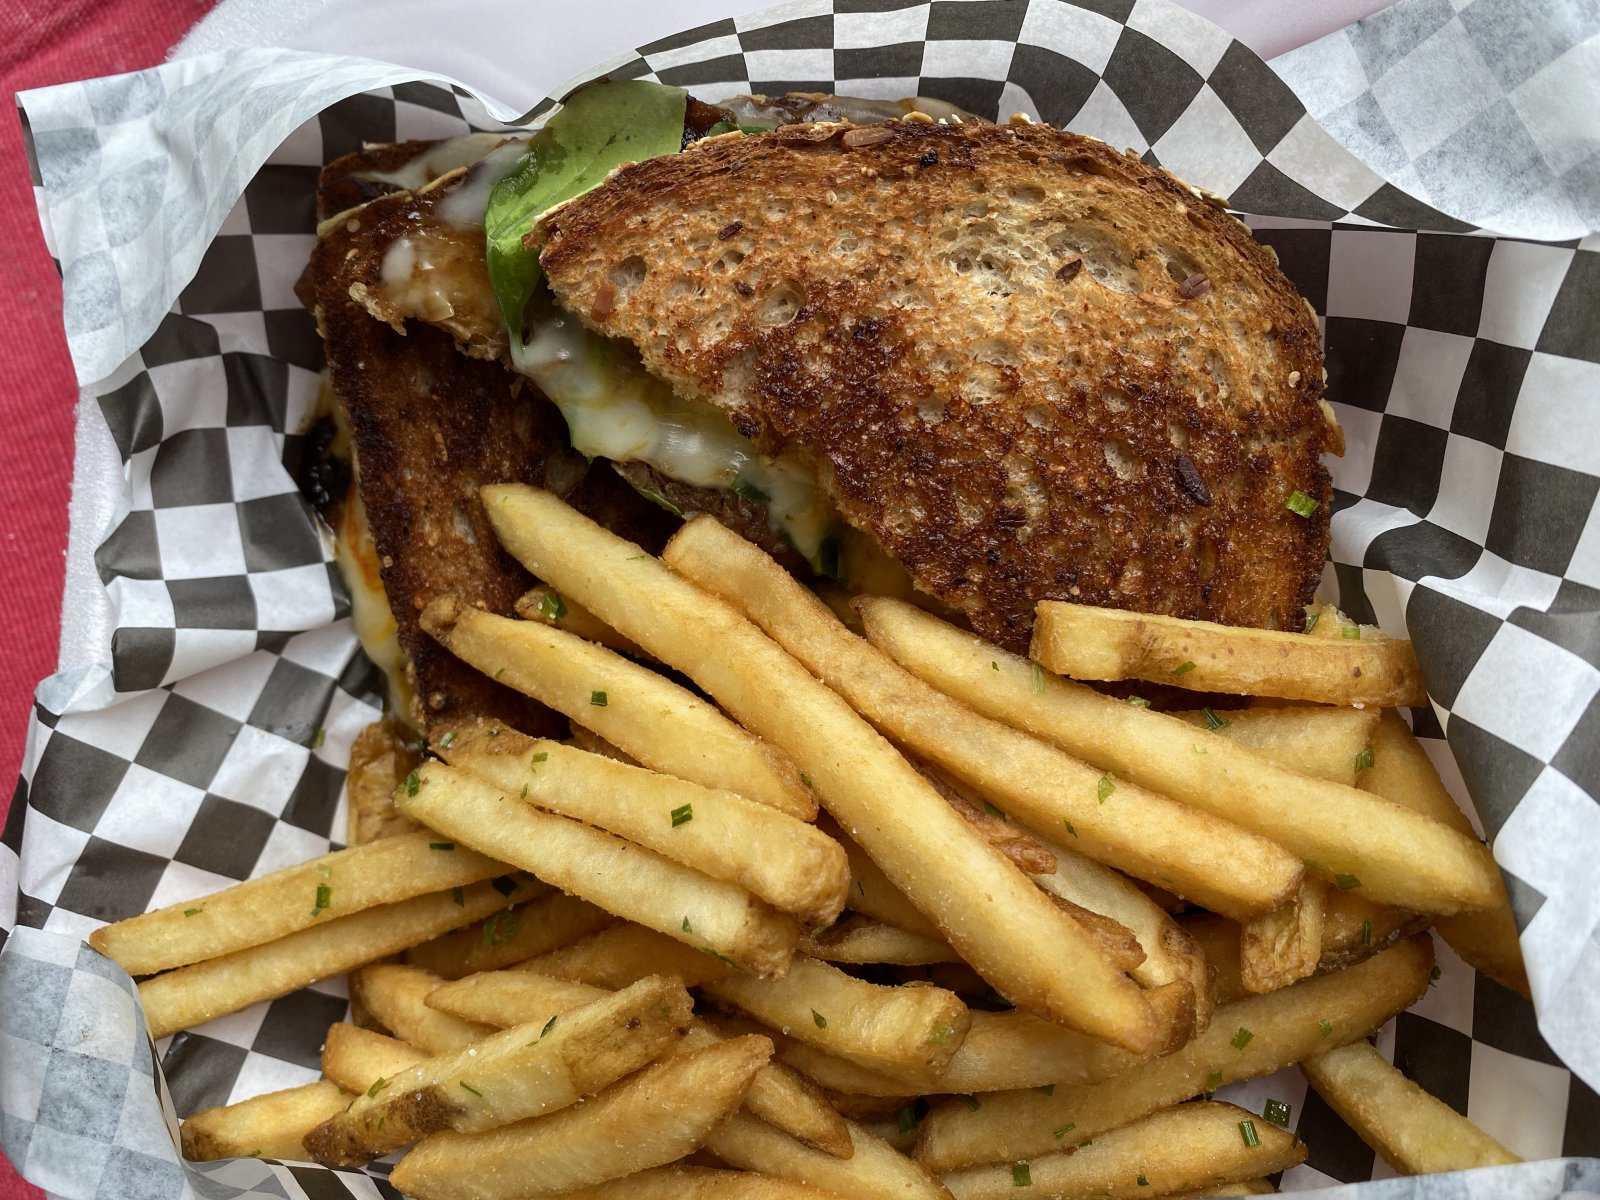 Brisket grilled cheese sandwich with chive fries